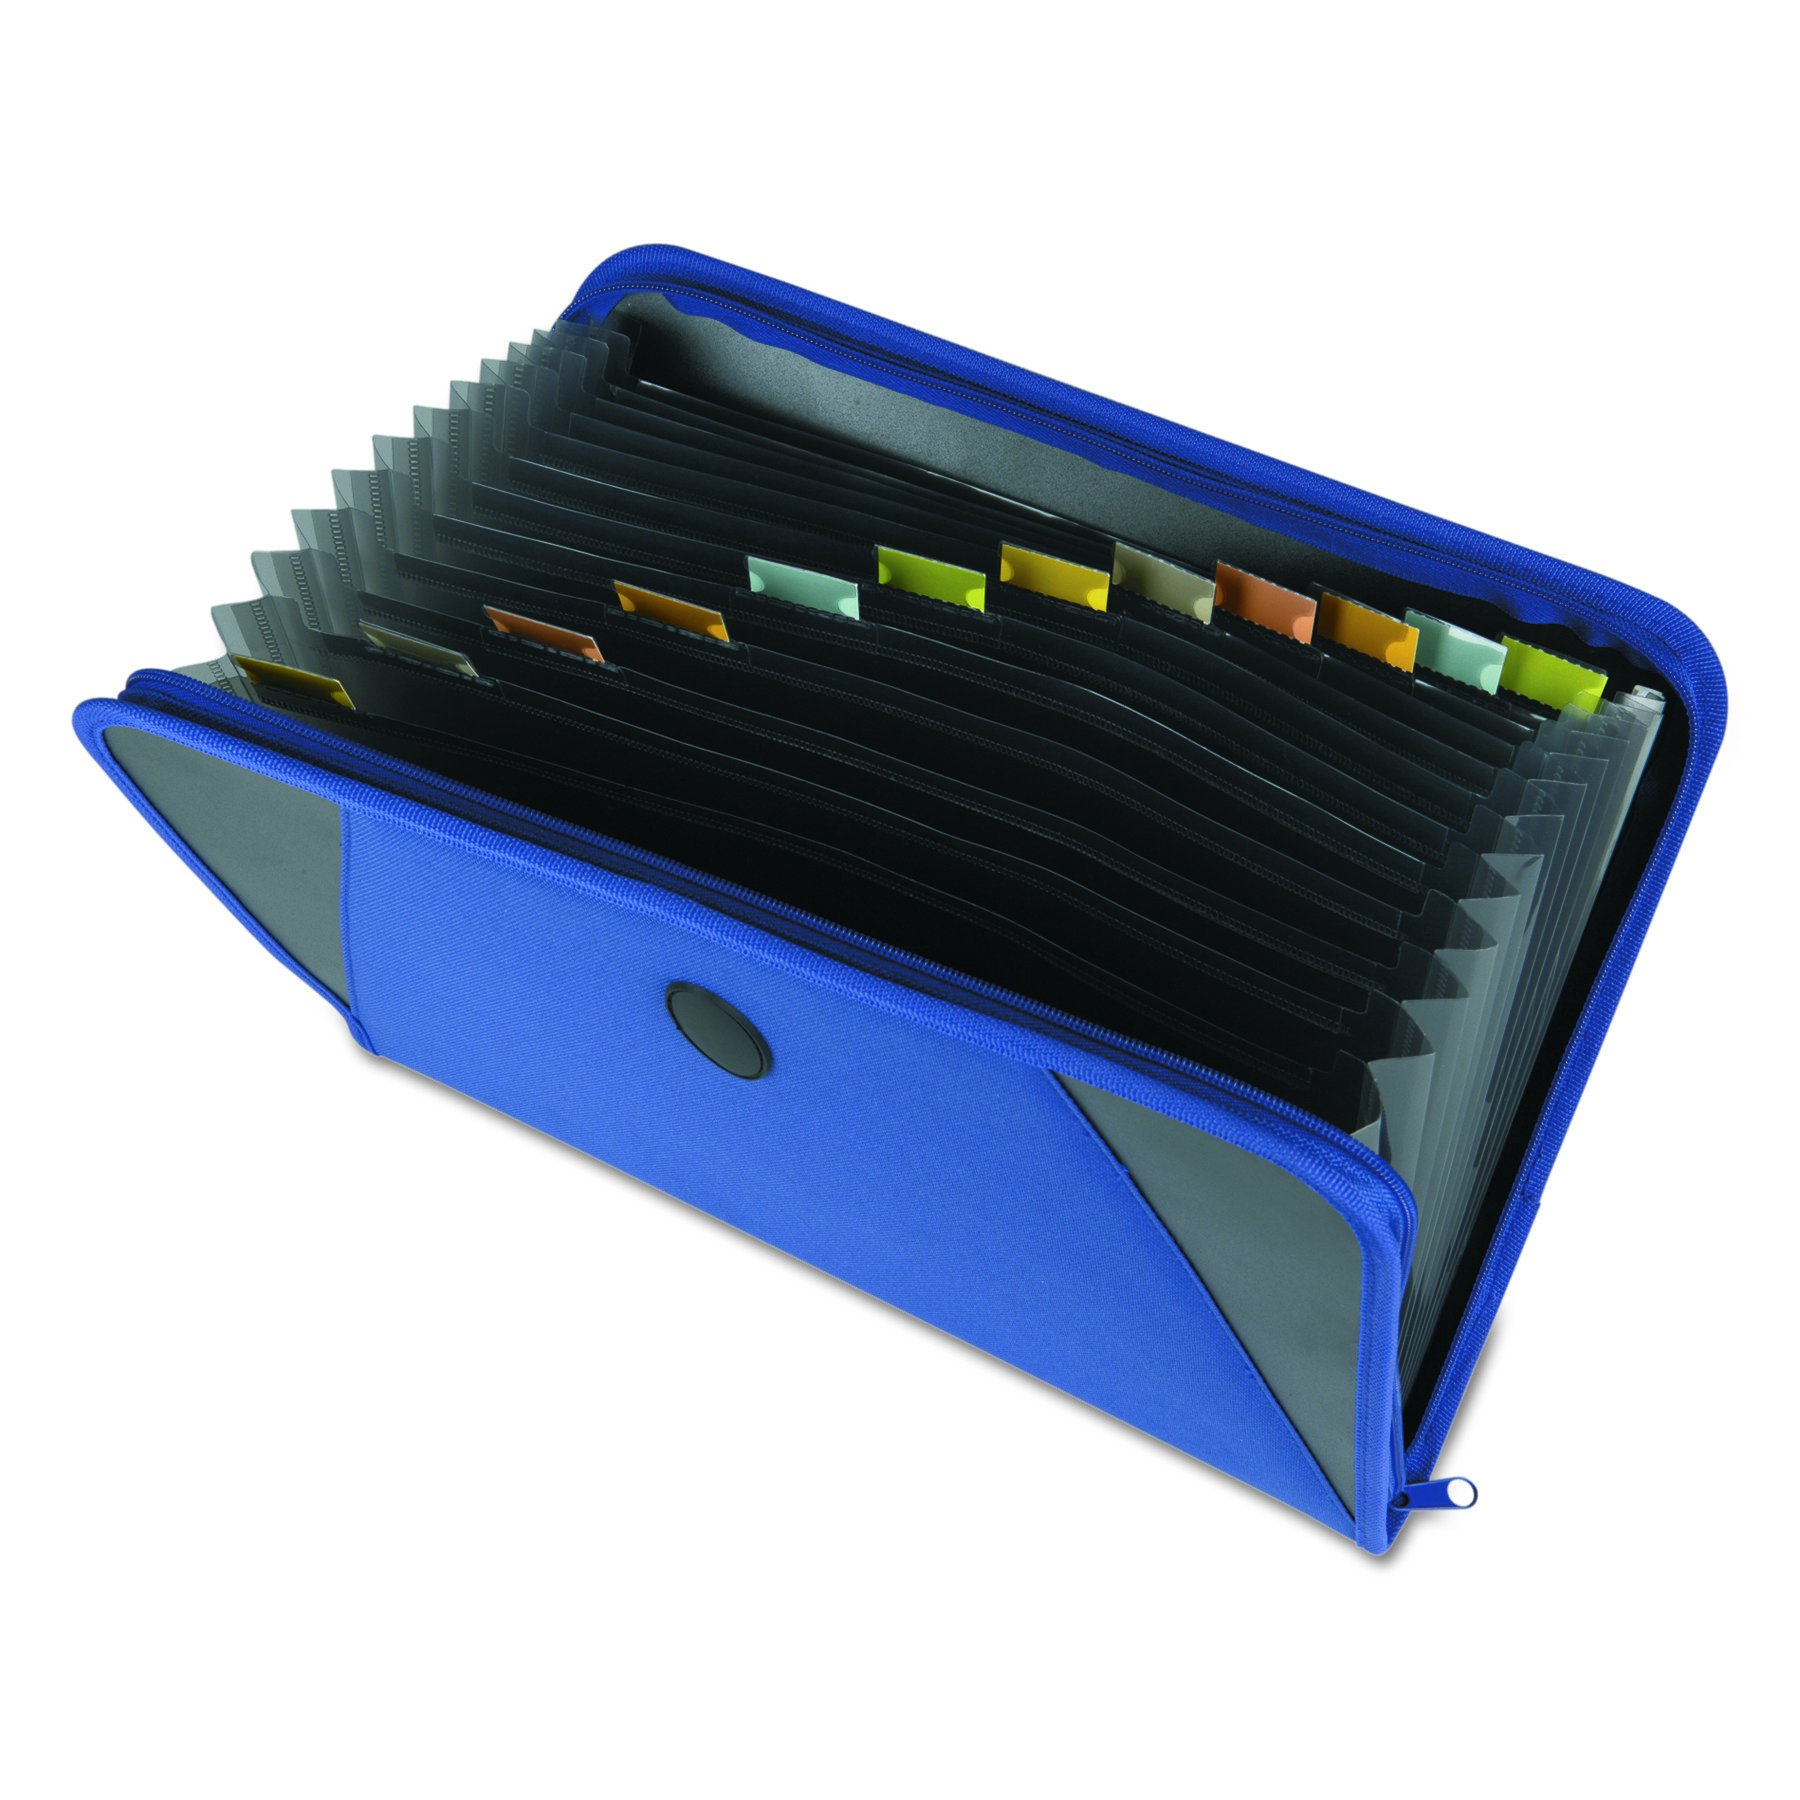 C-Line 48105 Expanding File with Zipper Closure, 13-Pocket, Tabbed Dividers, Blue